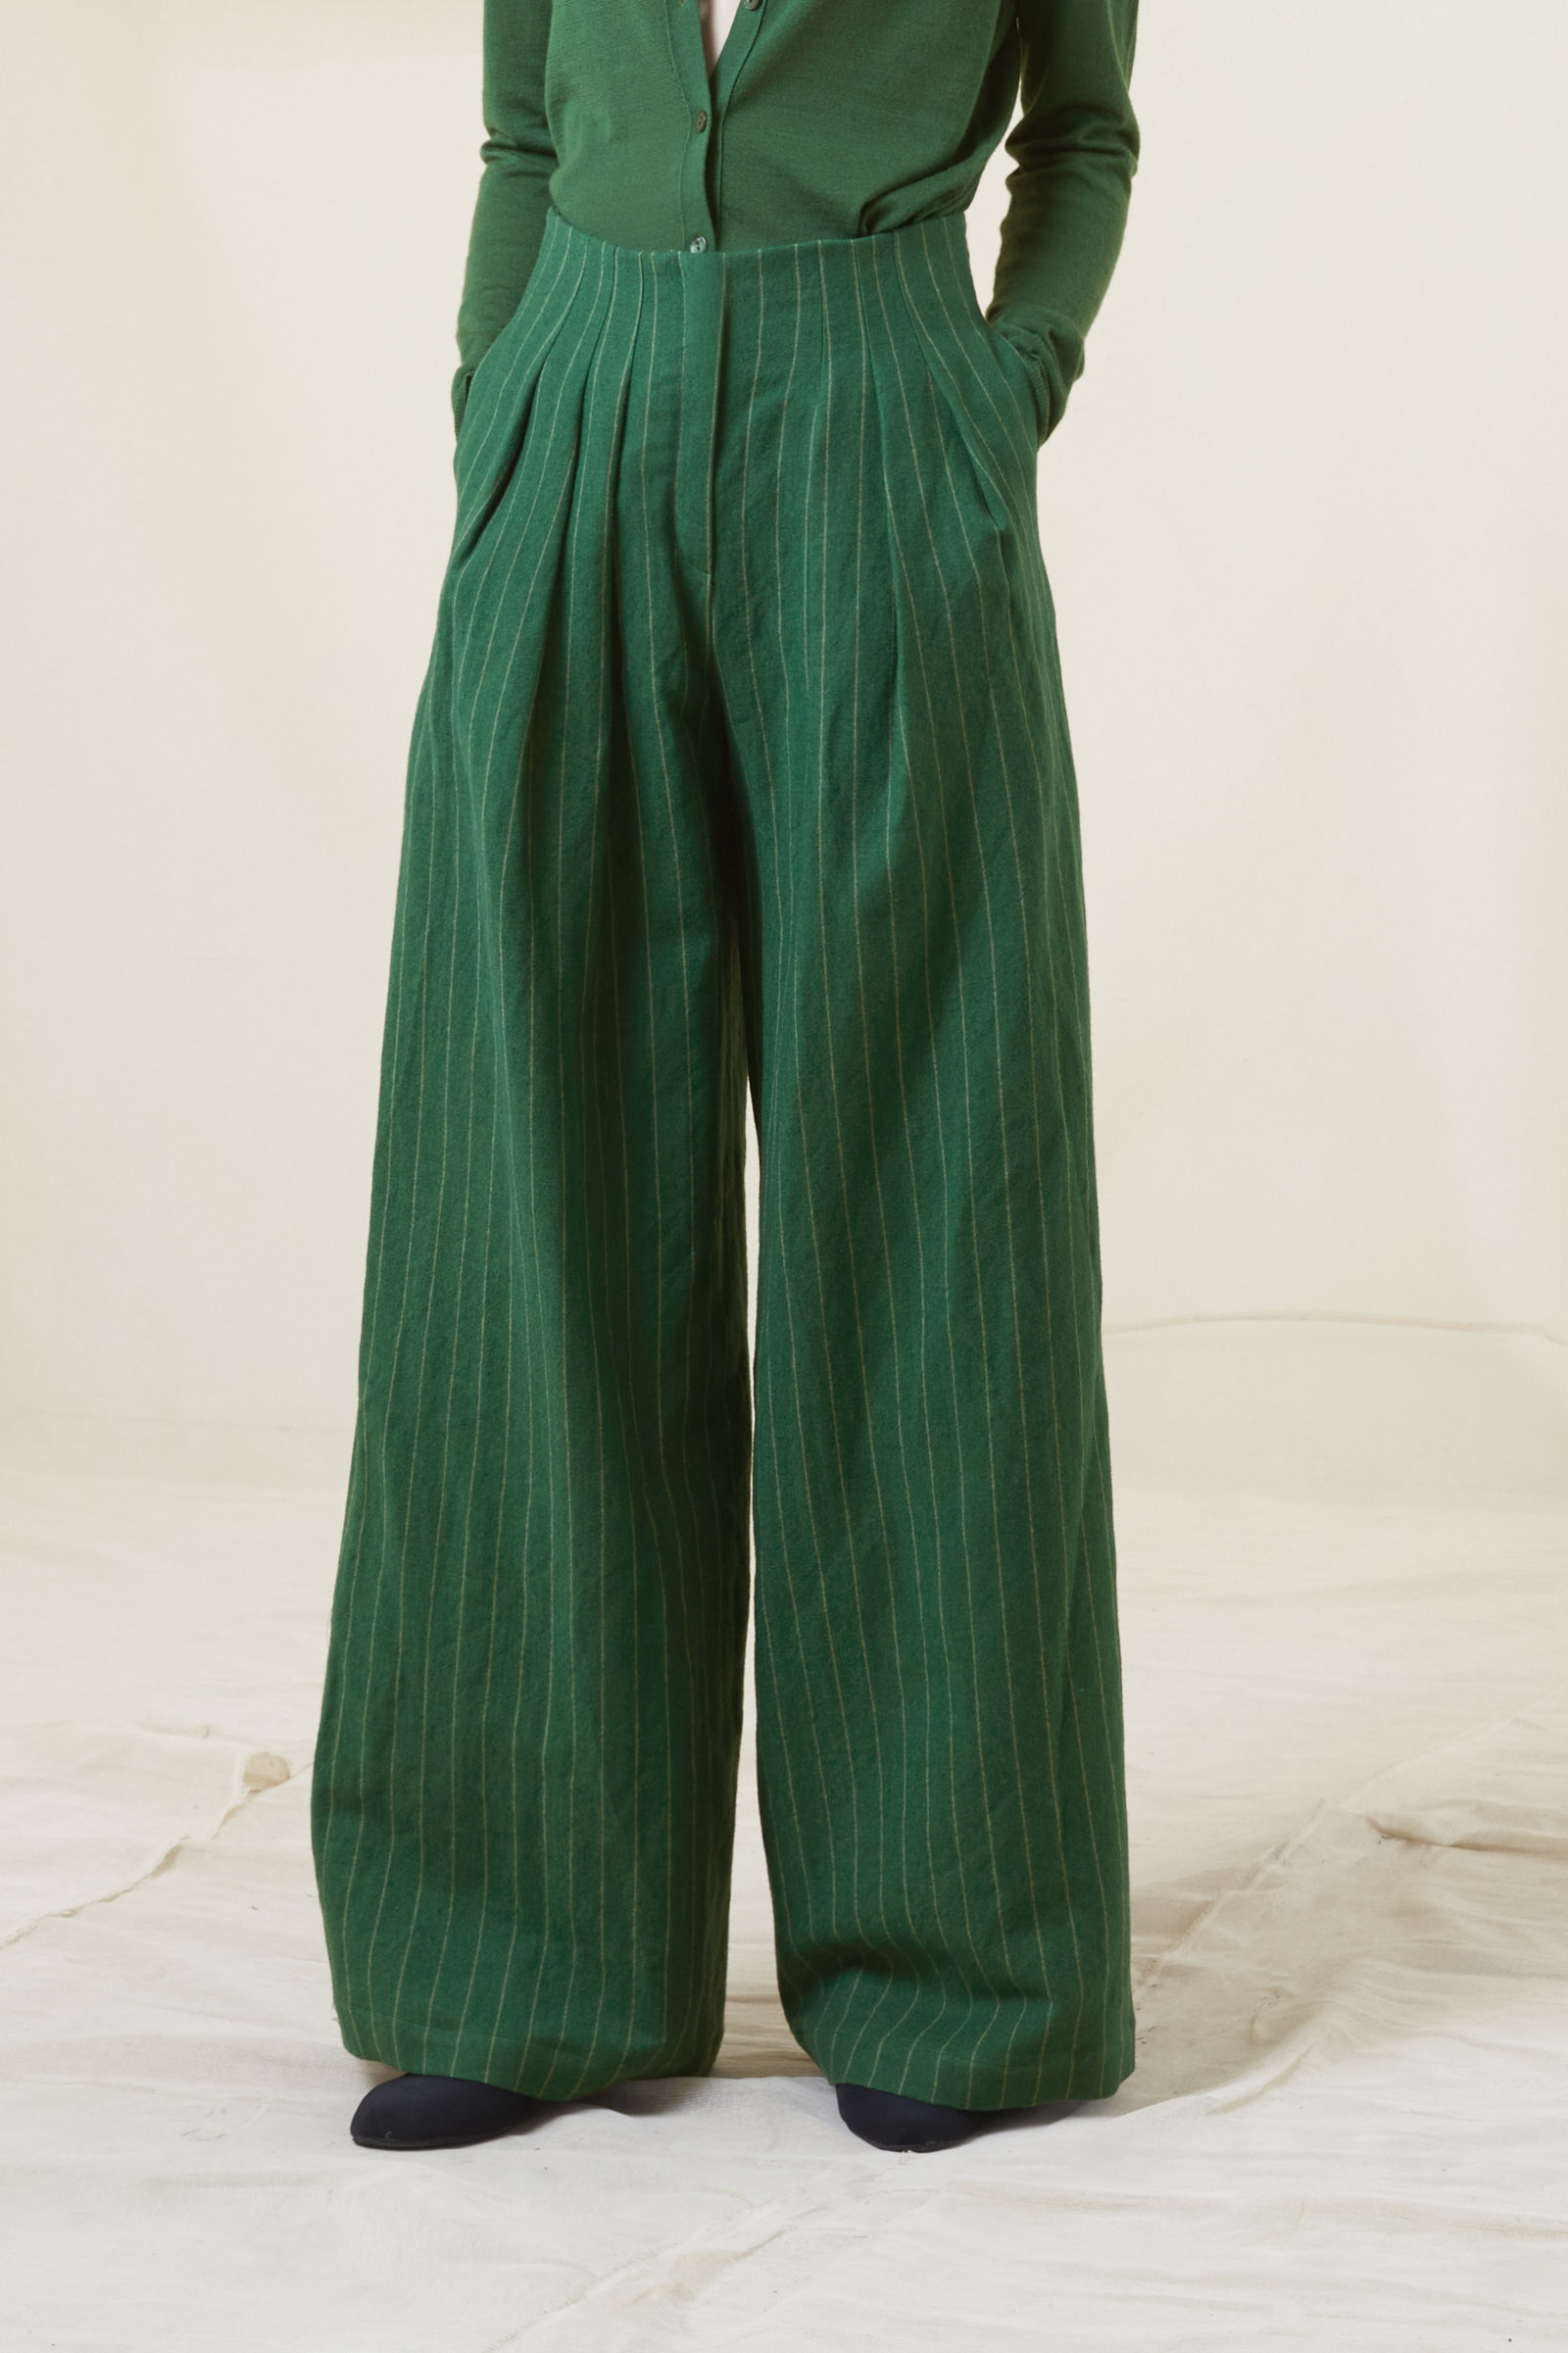 PRADERA, WOOL AND LINEN JACQUARD PANTS - Cortana